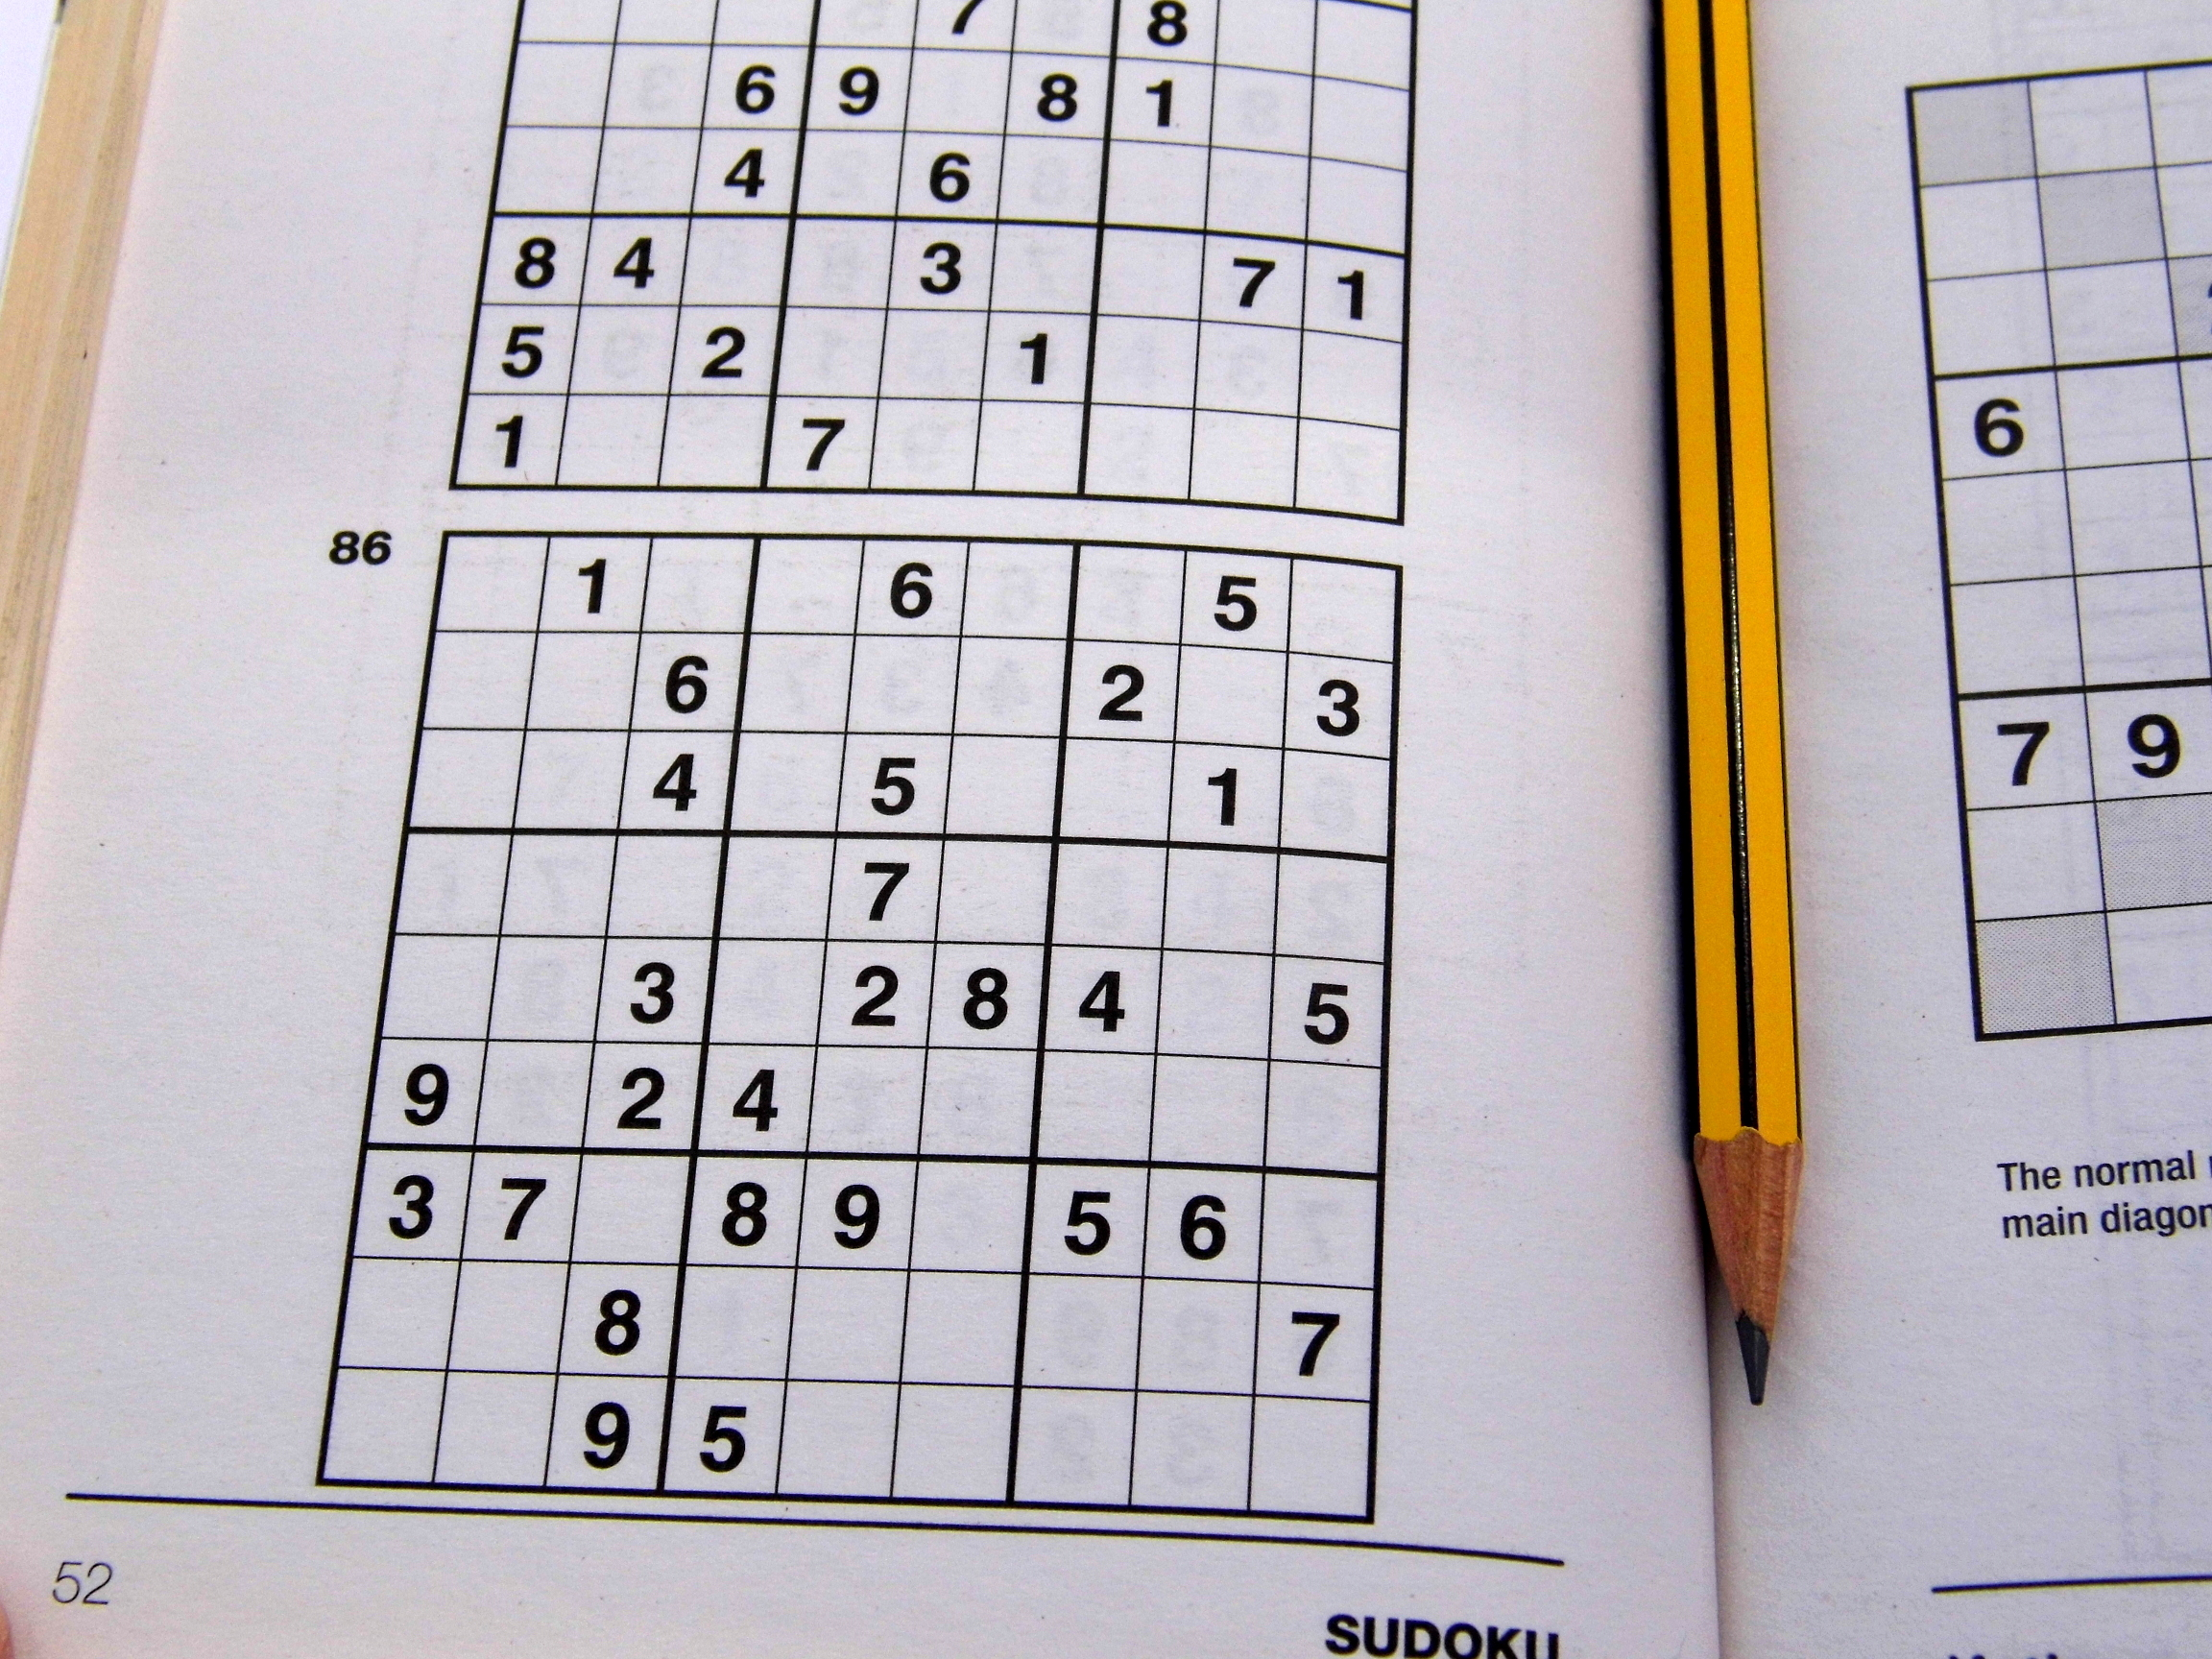 Astounding Sudoku Printable Medium